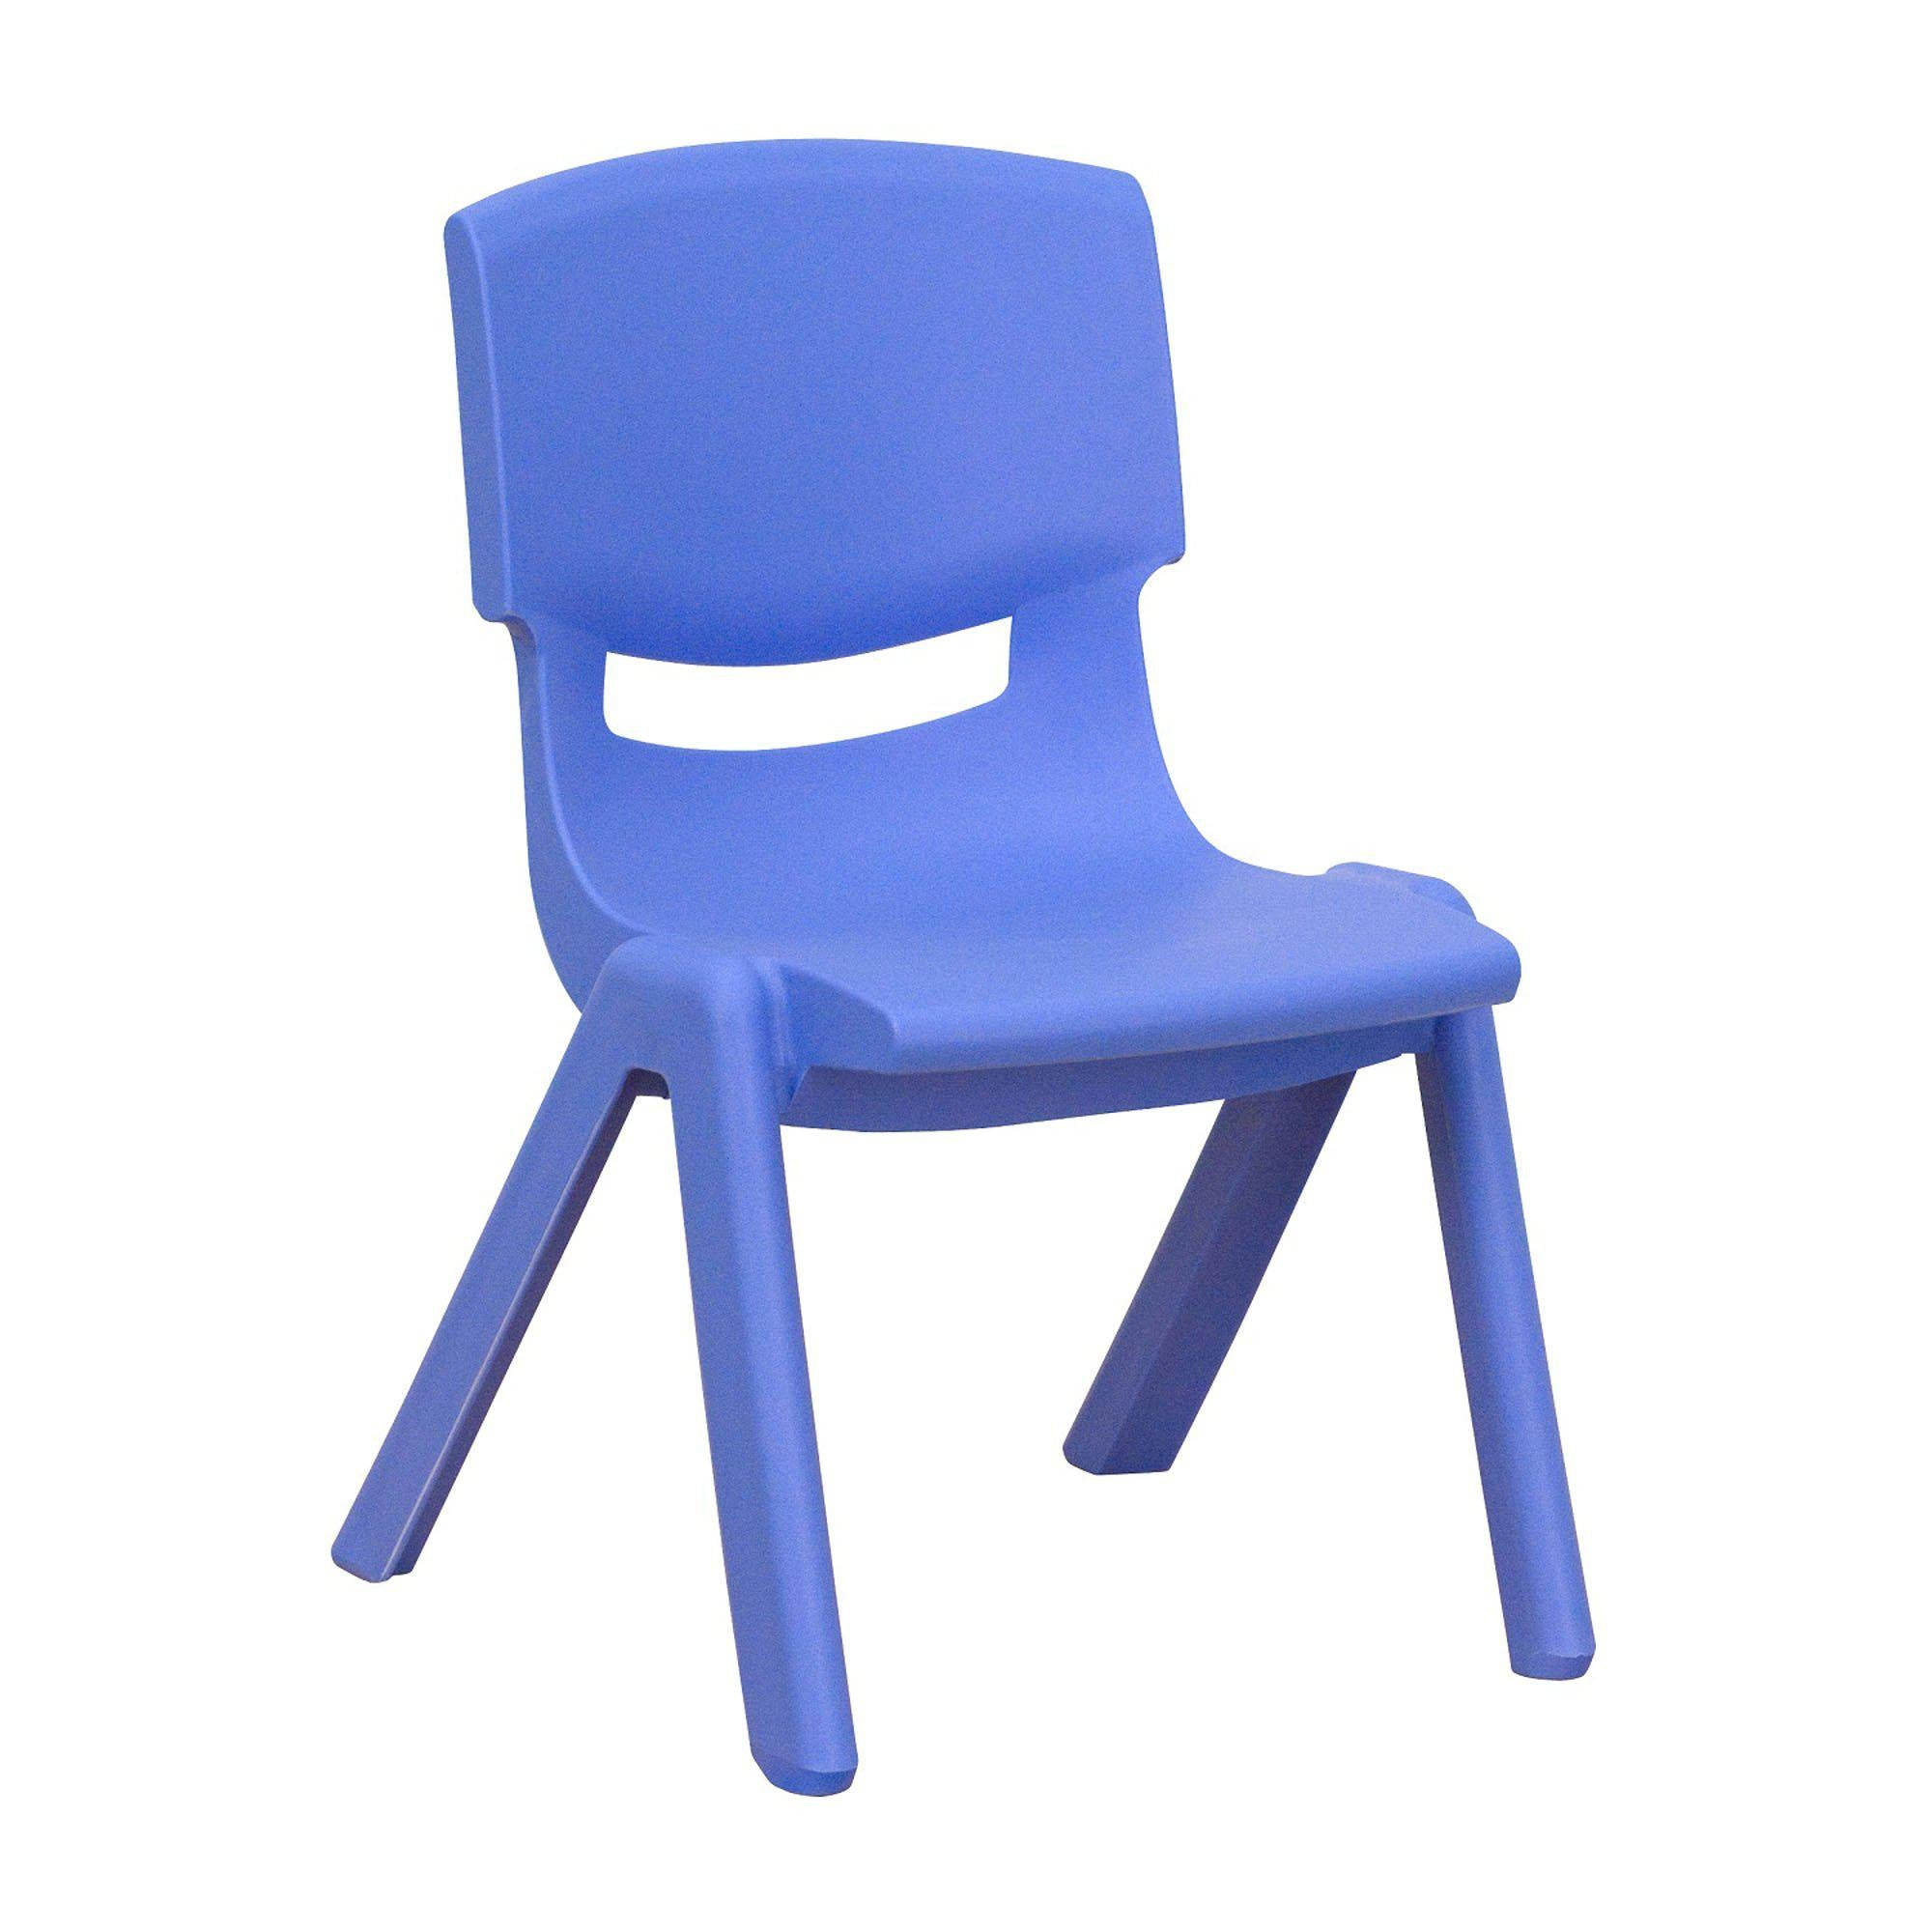 "Nextgen Plastic School Stack Chair, 10-1/2"" Seat Height"